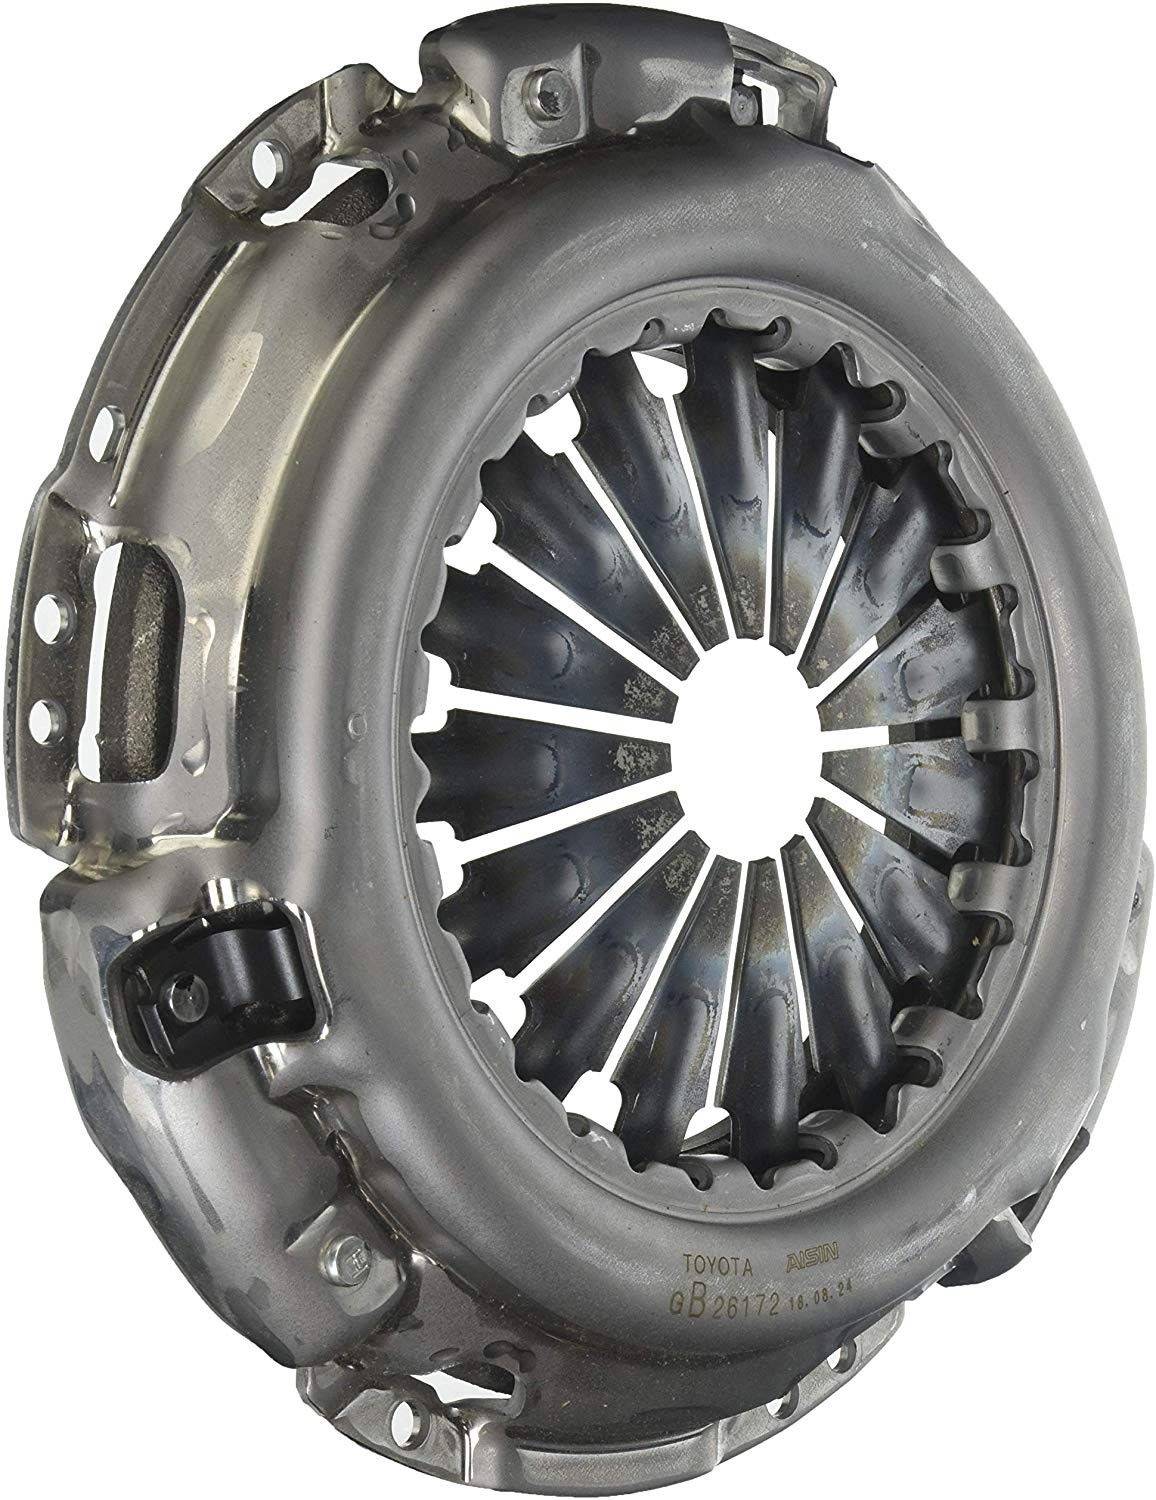 Luk Clutch Pressure Plate For Tractor Escorts 355 Small Lever 9mm 280 - 1280318100